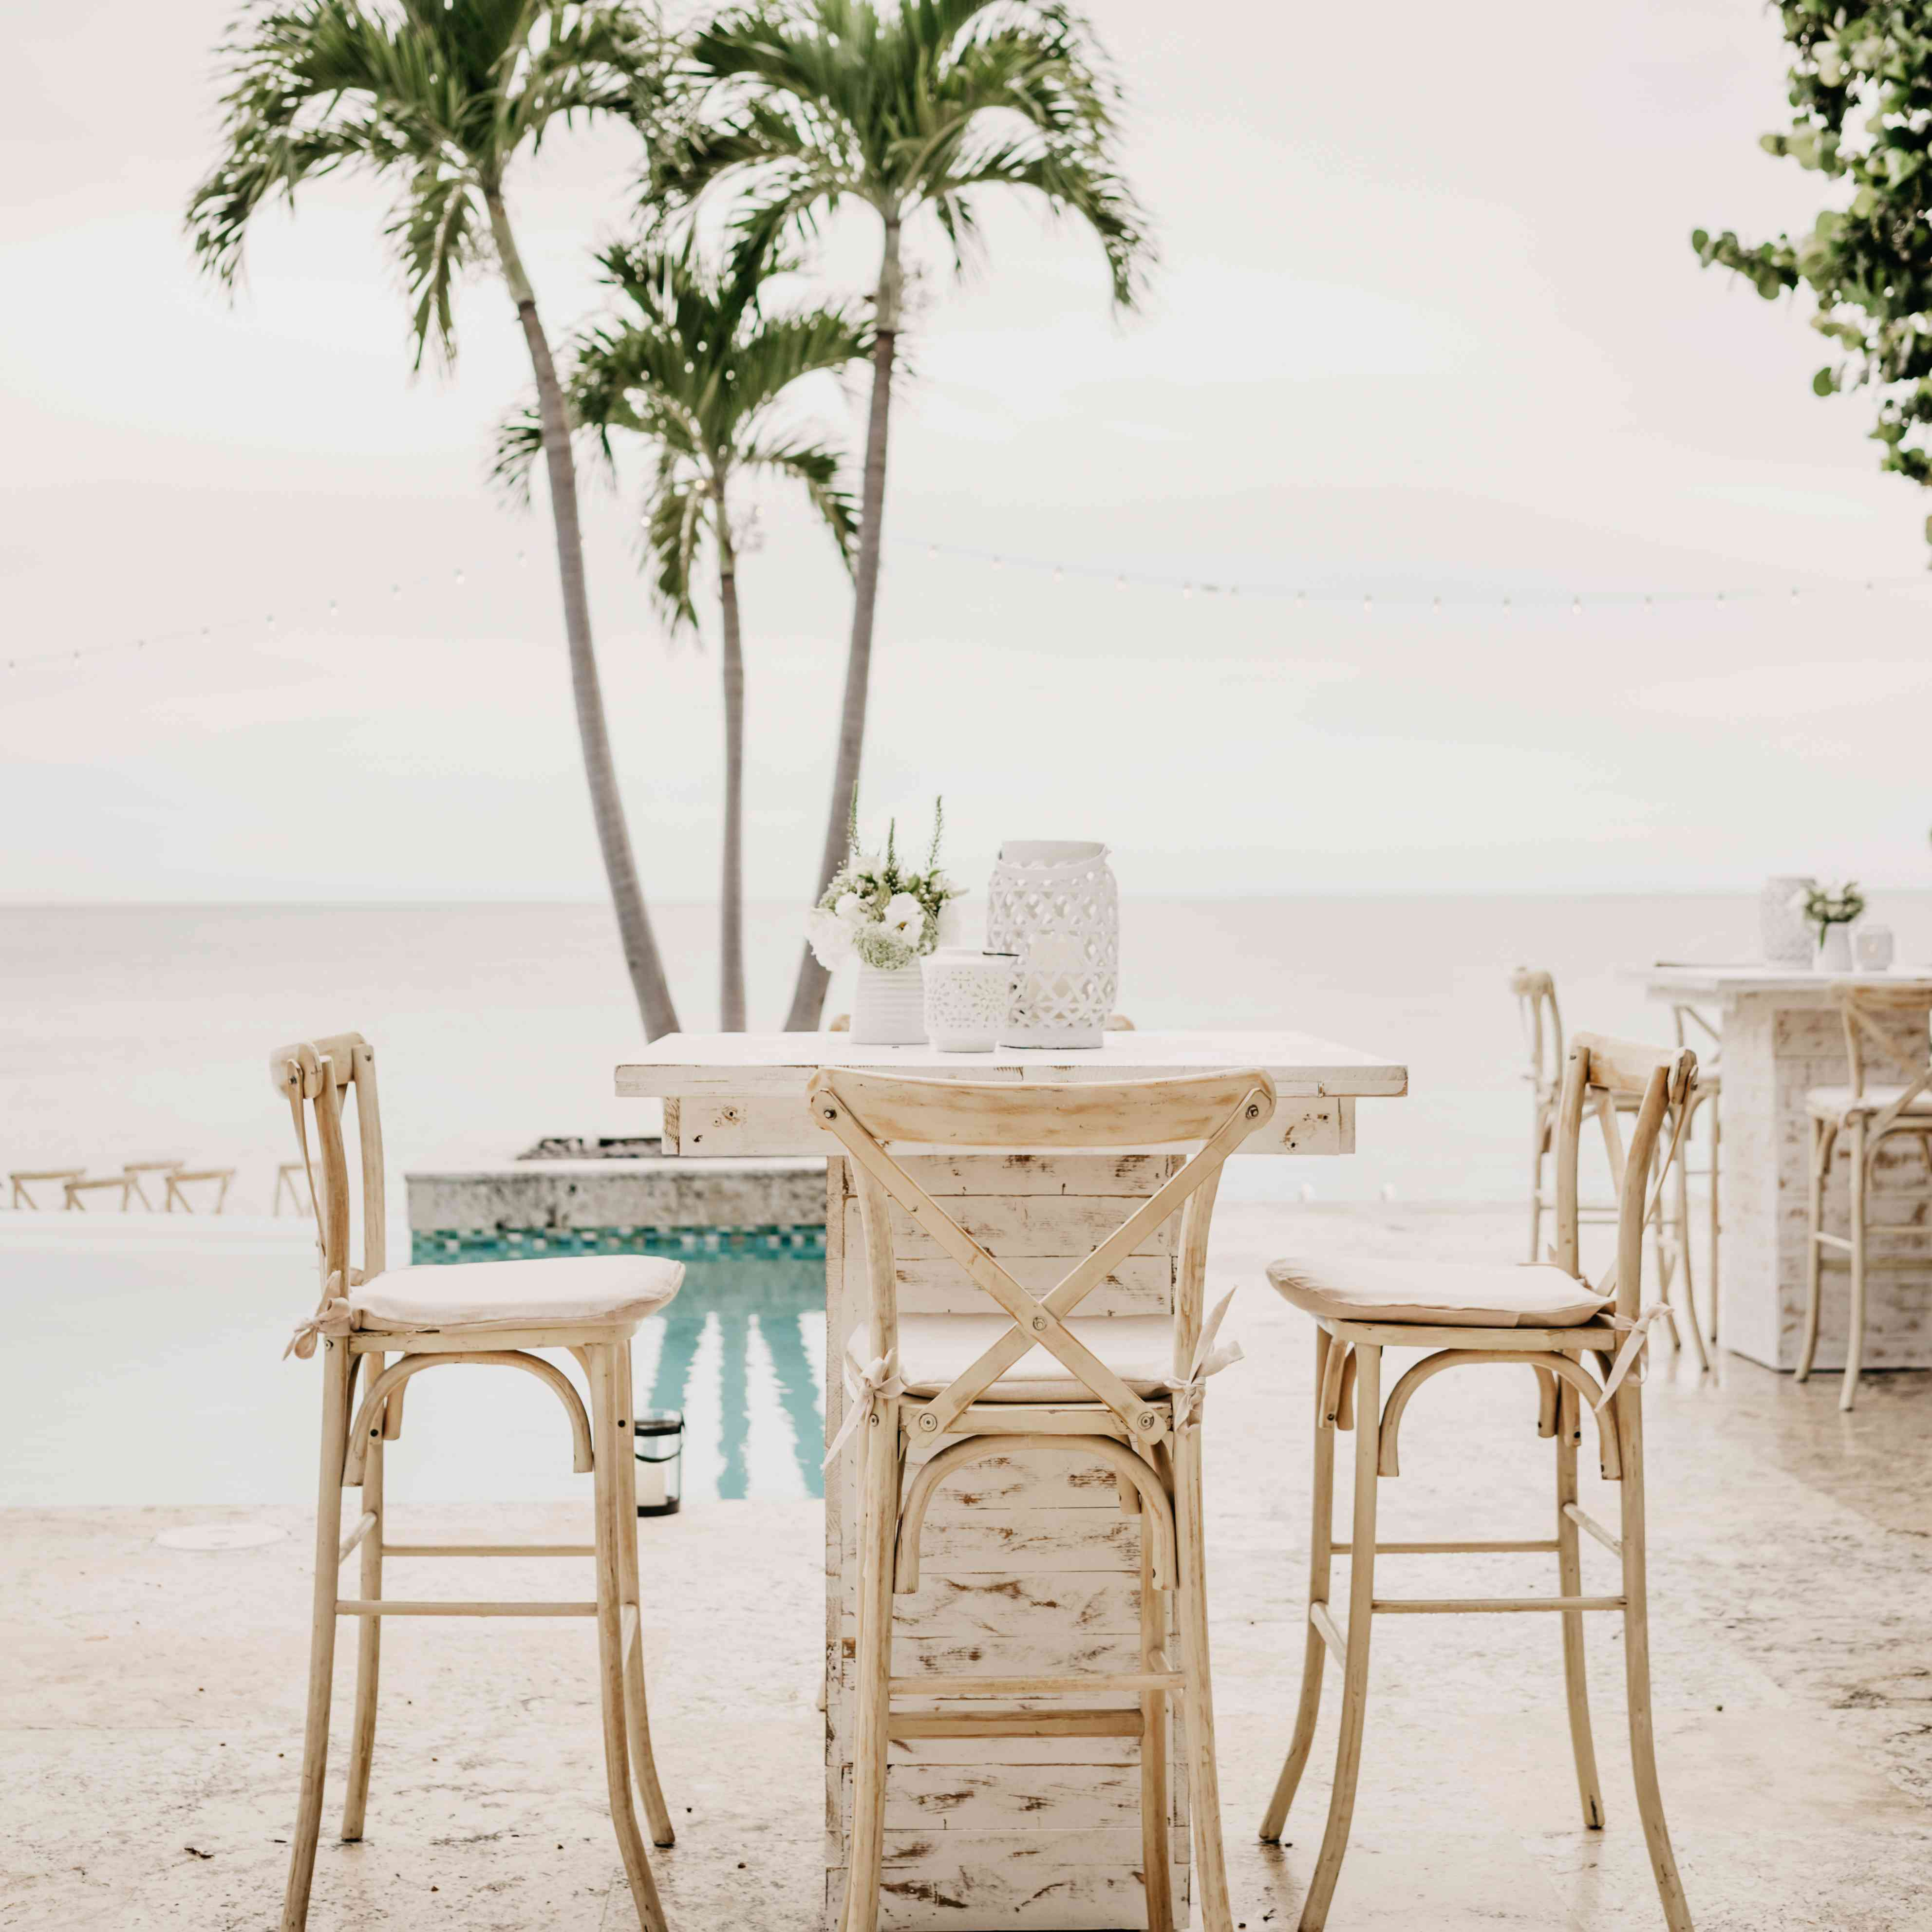 Simple table setting at an outdoor wedding by the beach